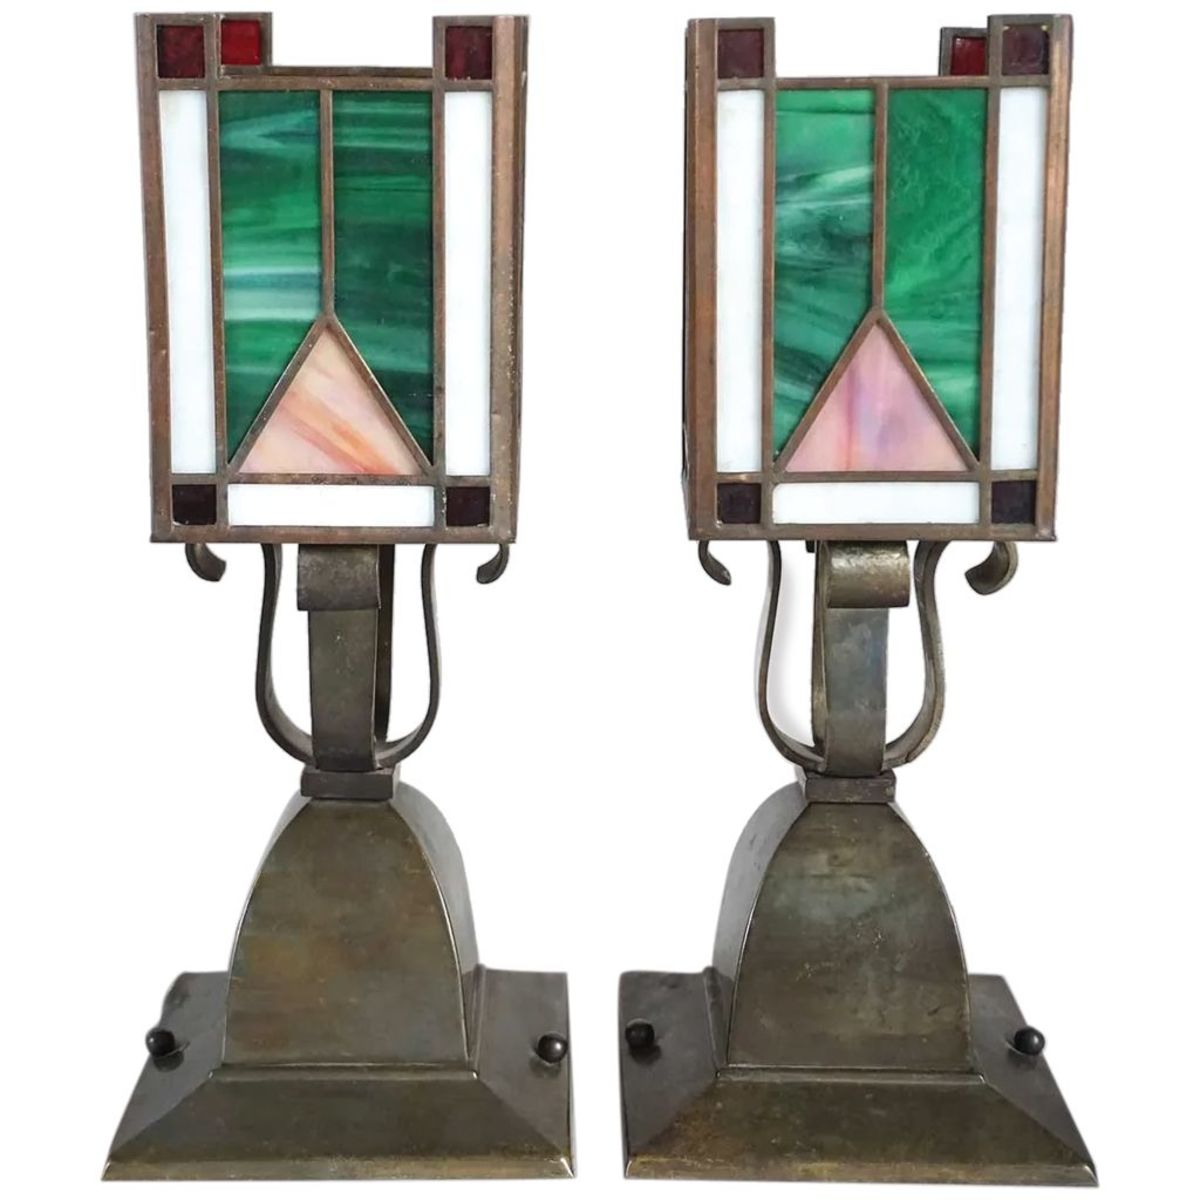 Ruby Lane OHJ1219 thumbnail_Pair-American-Arts-Crafts-Brass-Leaded-full-1A-2048-10.10-c86223c8 2019-10-30 17_21_49